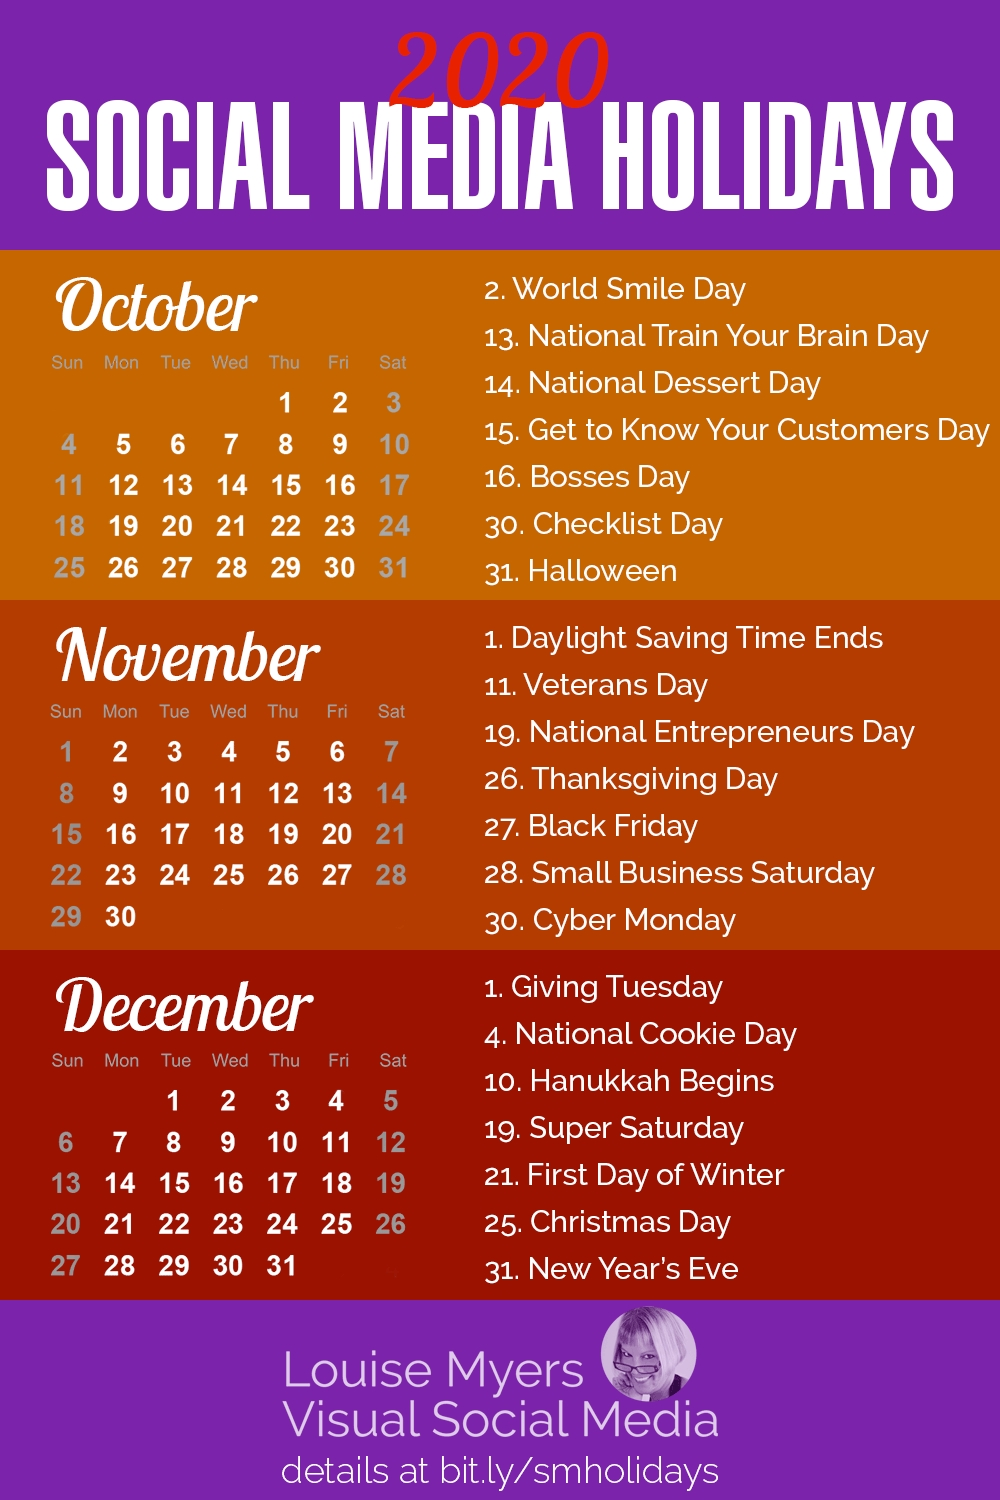 84 Social Media Holidays You Need In 2020: Indispensable!-National Calendar Holidays 2020